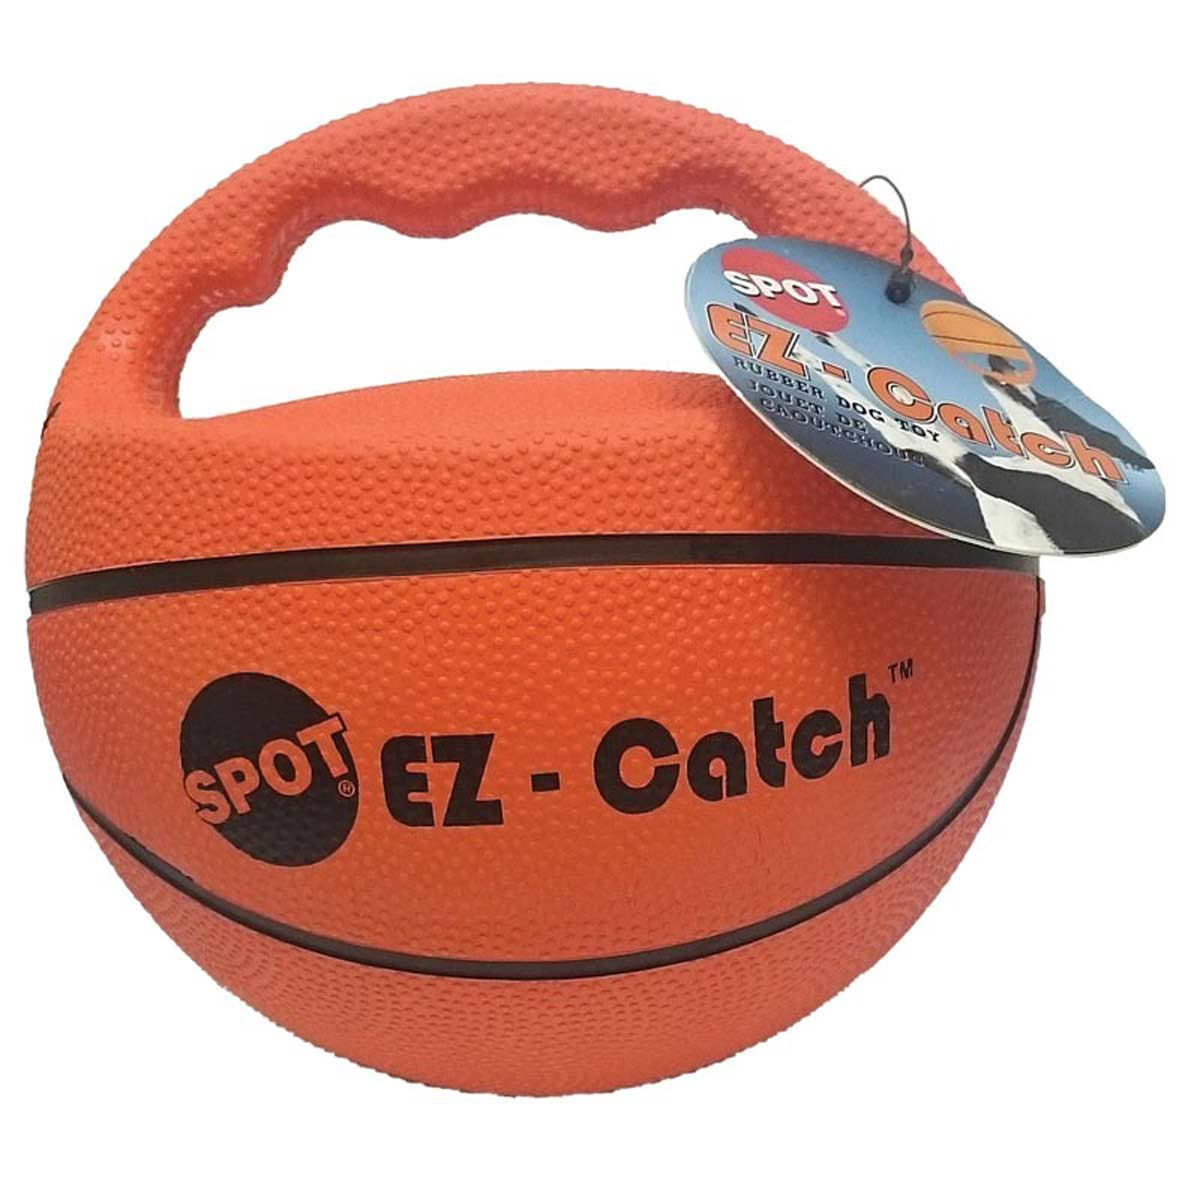 SPOT EZ Catch Ball for Dogs - 6 inch